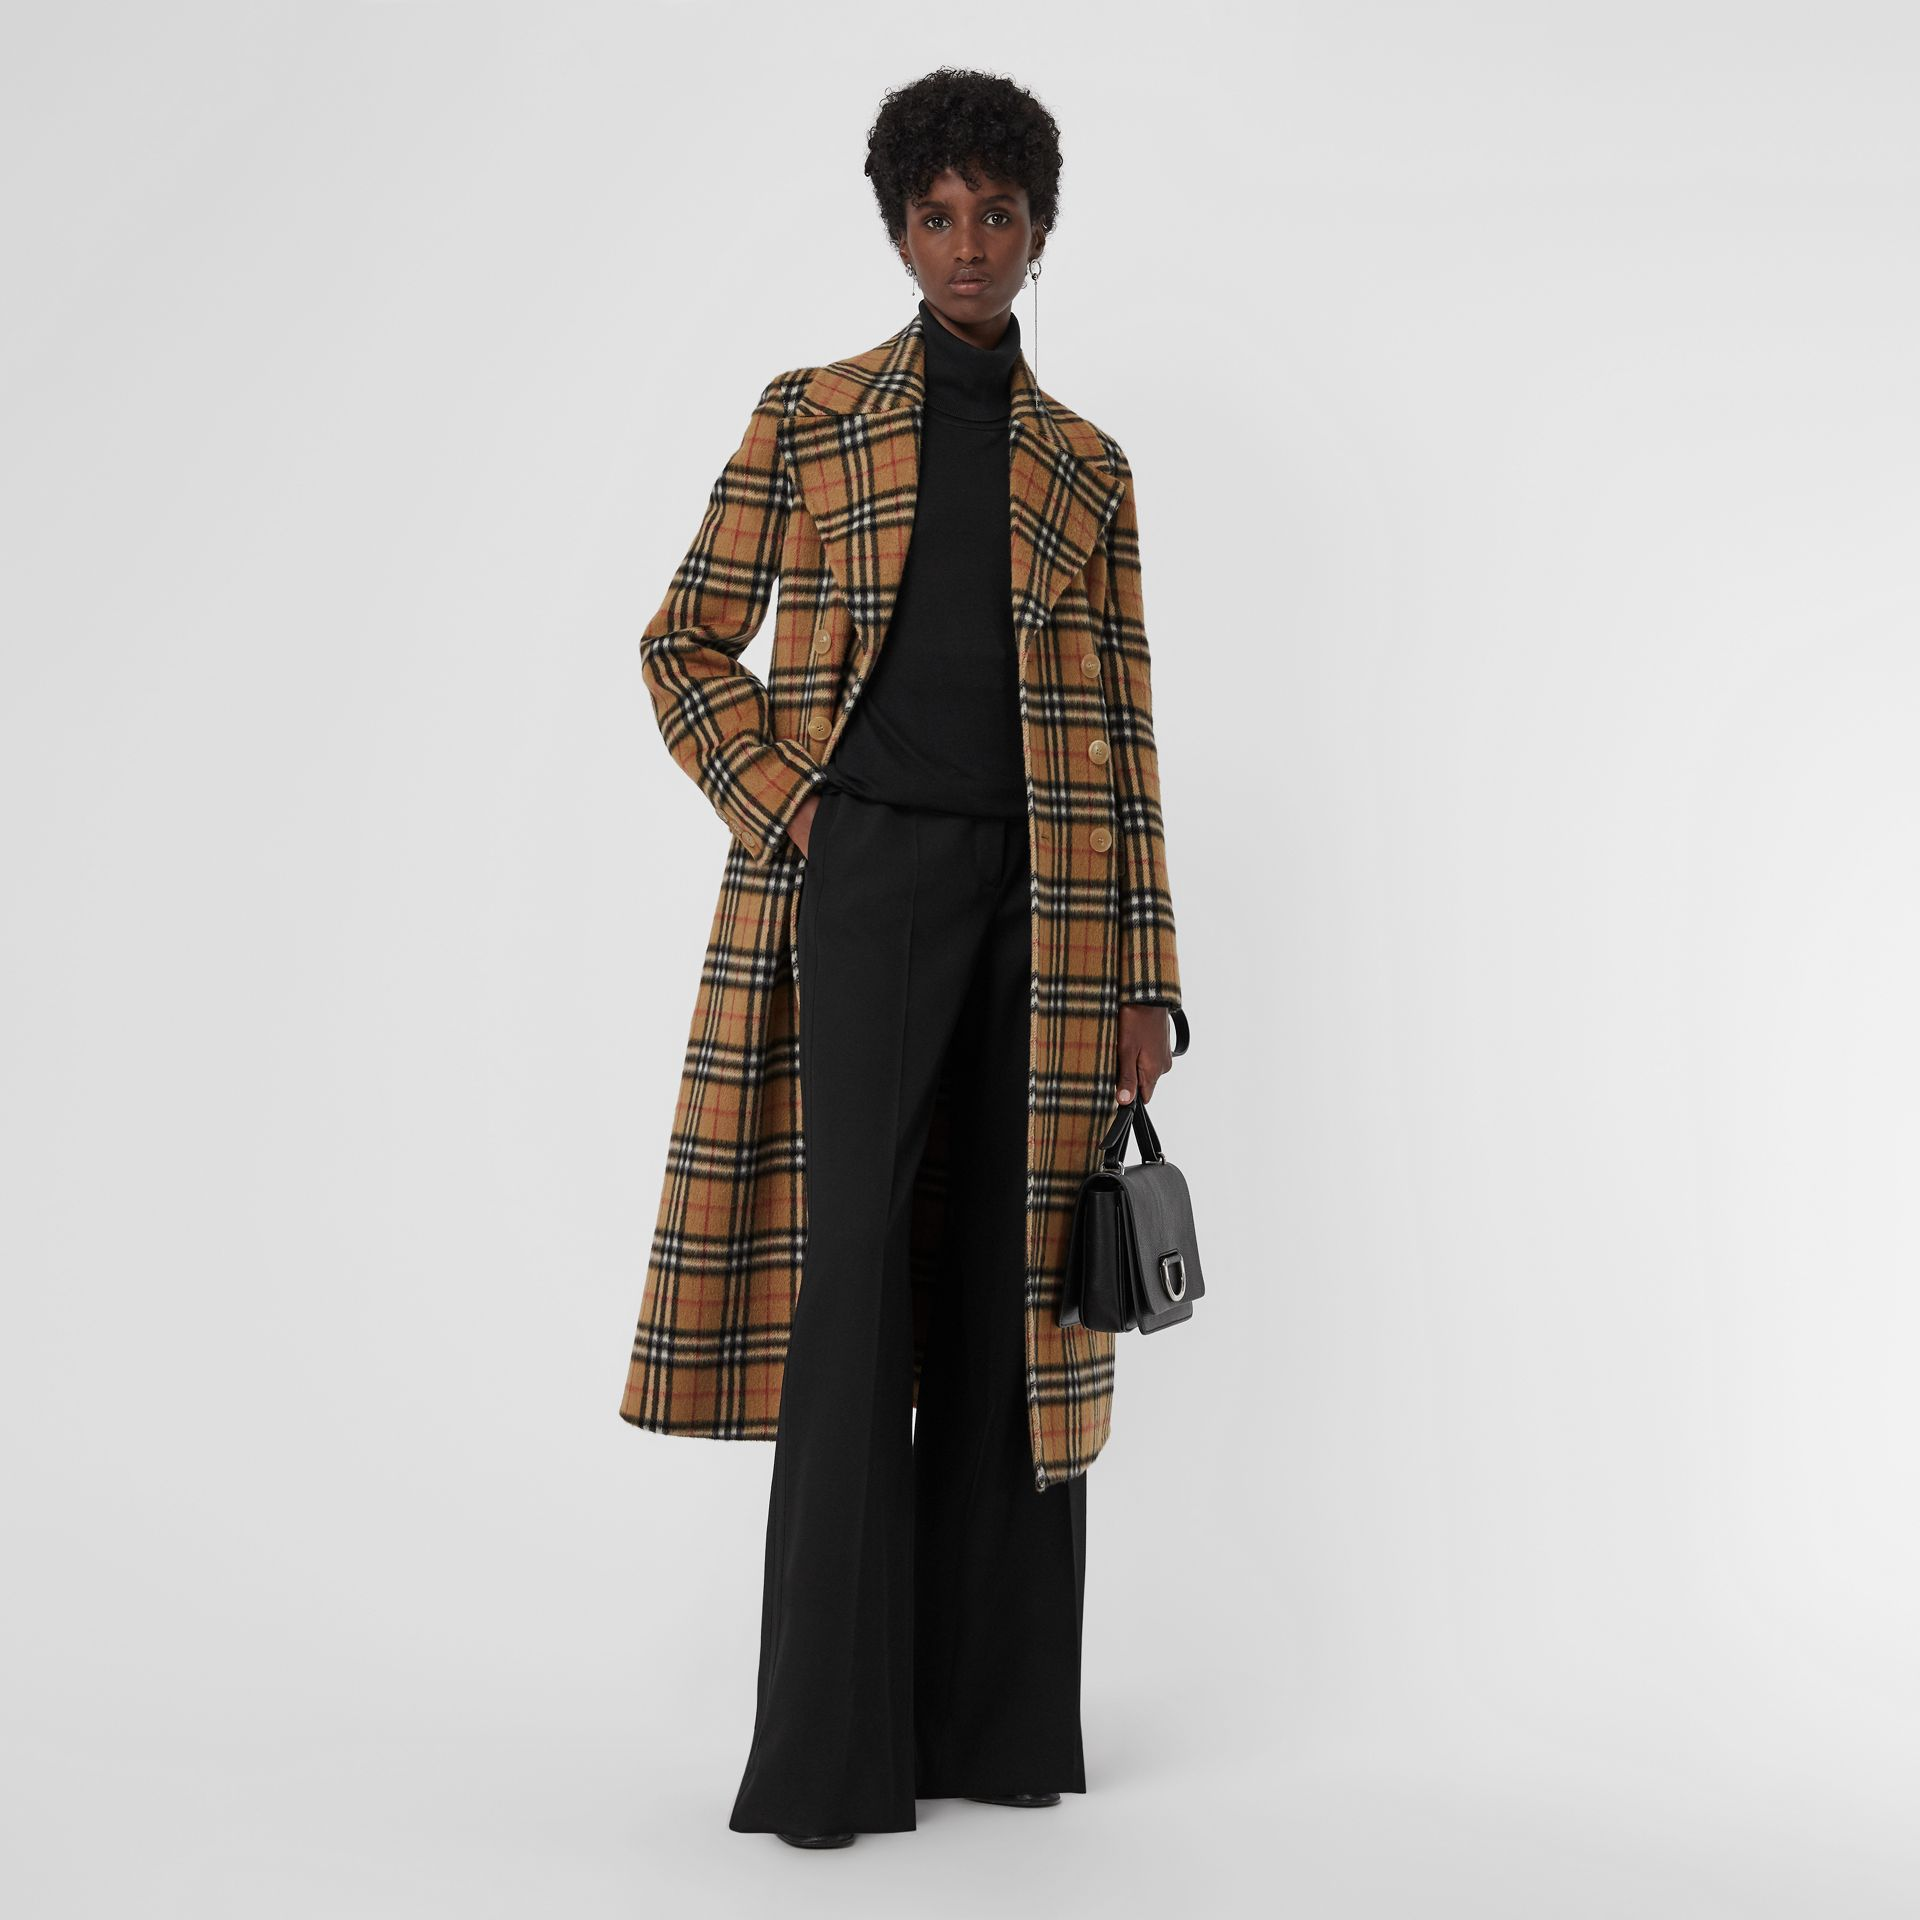 Manteau ajusté en alpaga à motif Vintage check (Jaune Antique) - Femme | Burberry - photo de la galerie 0